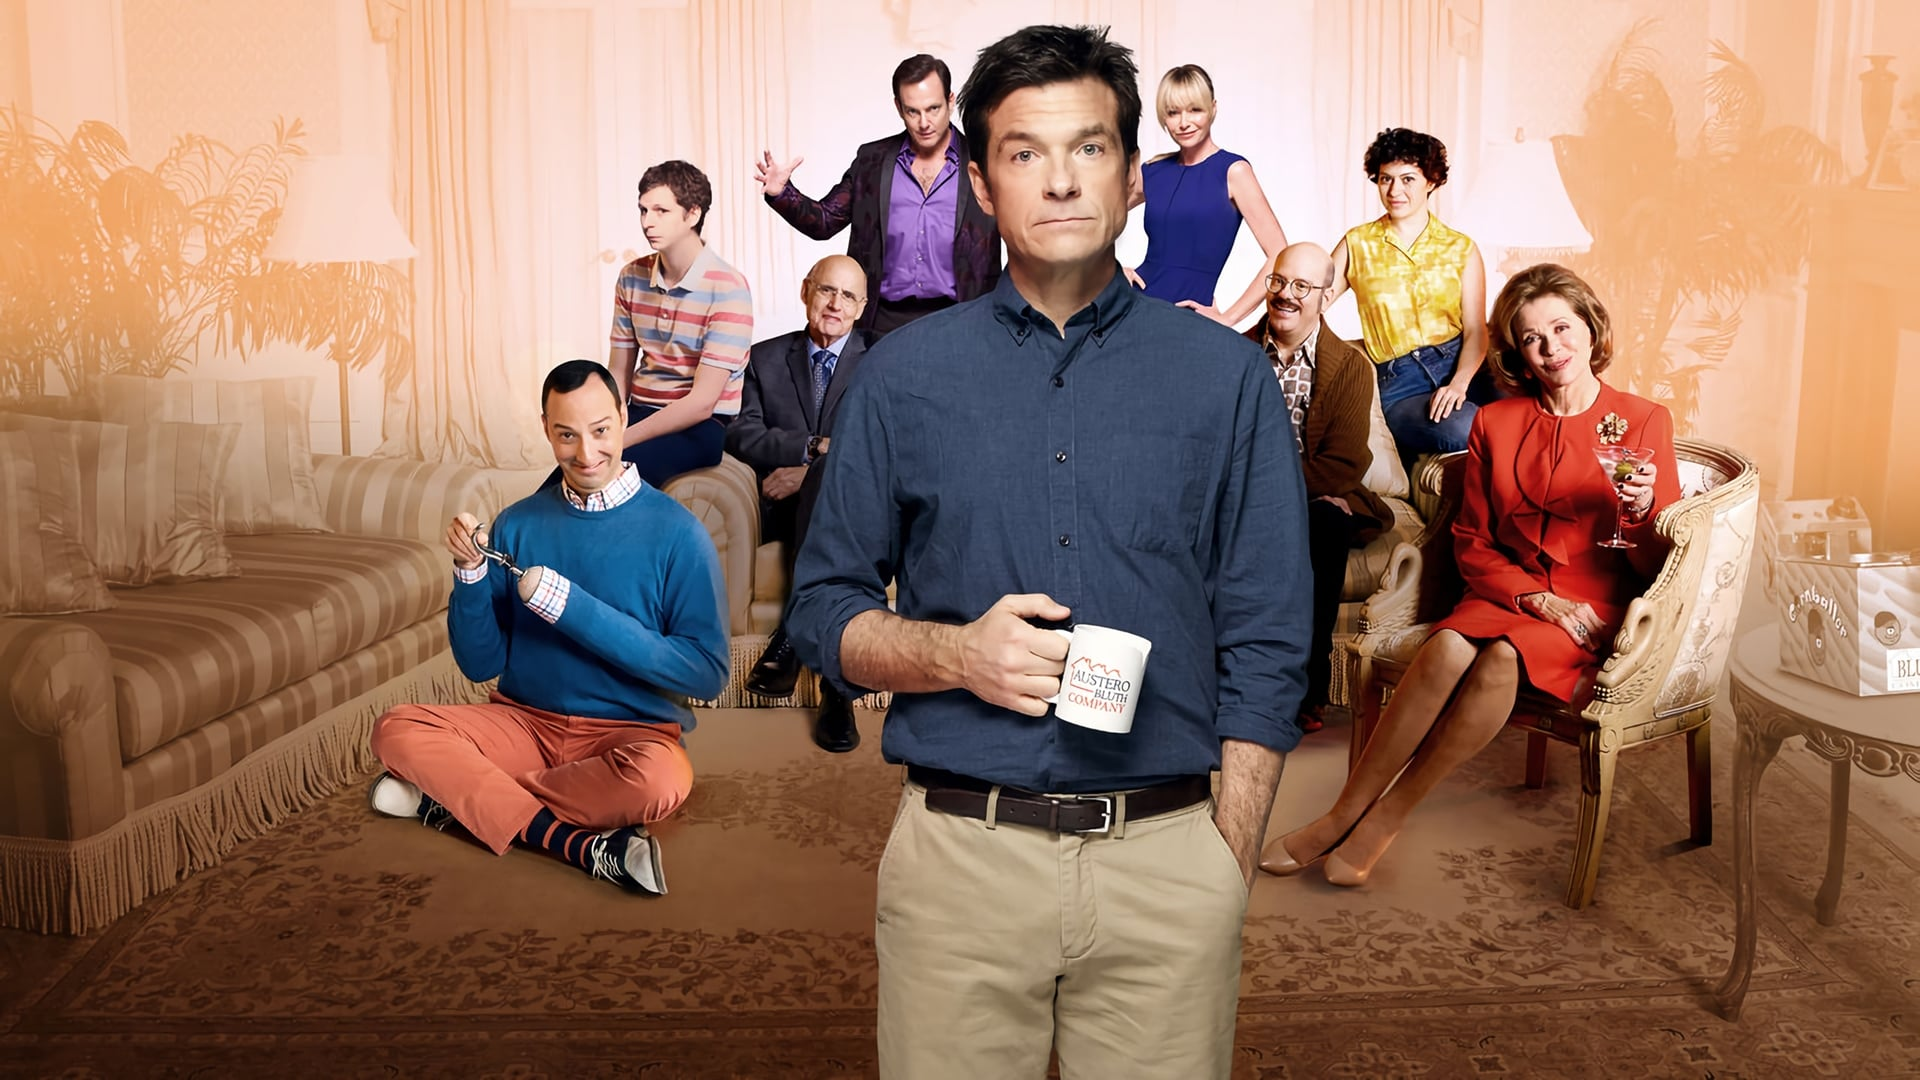 No more new seasons for Arrested Development